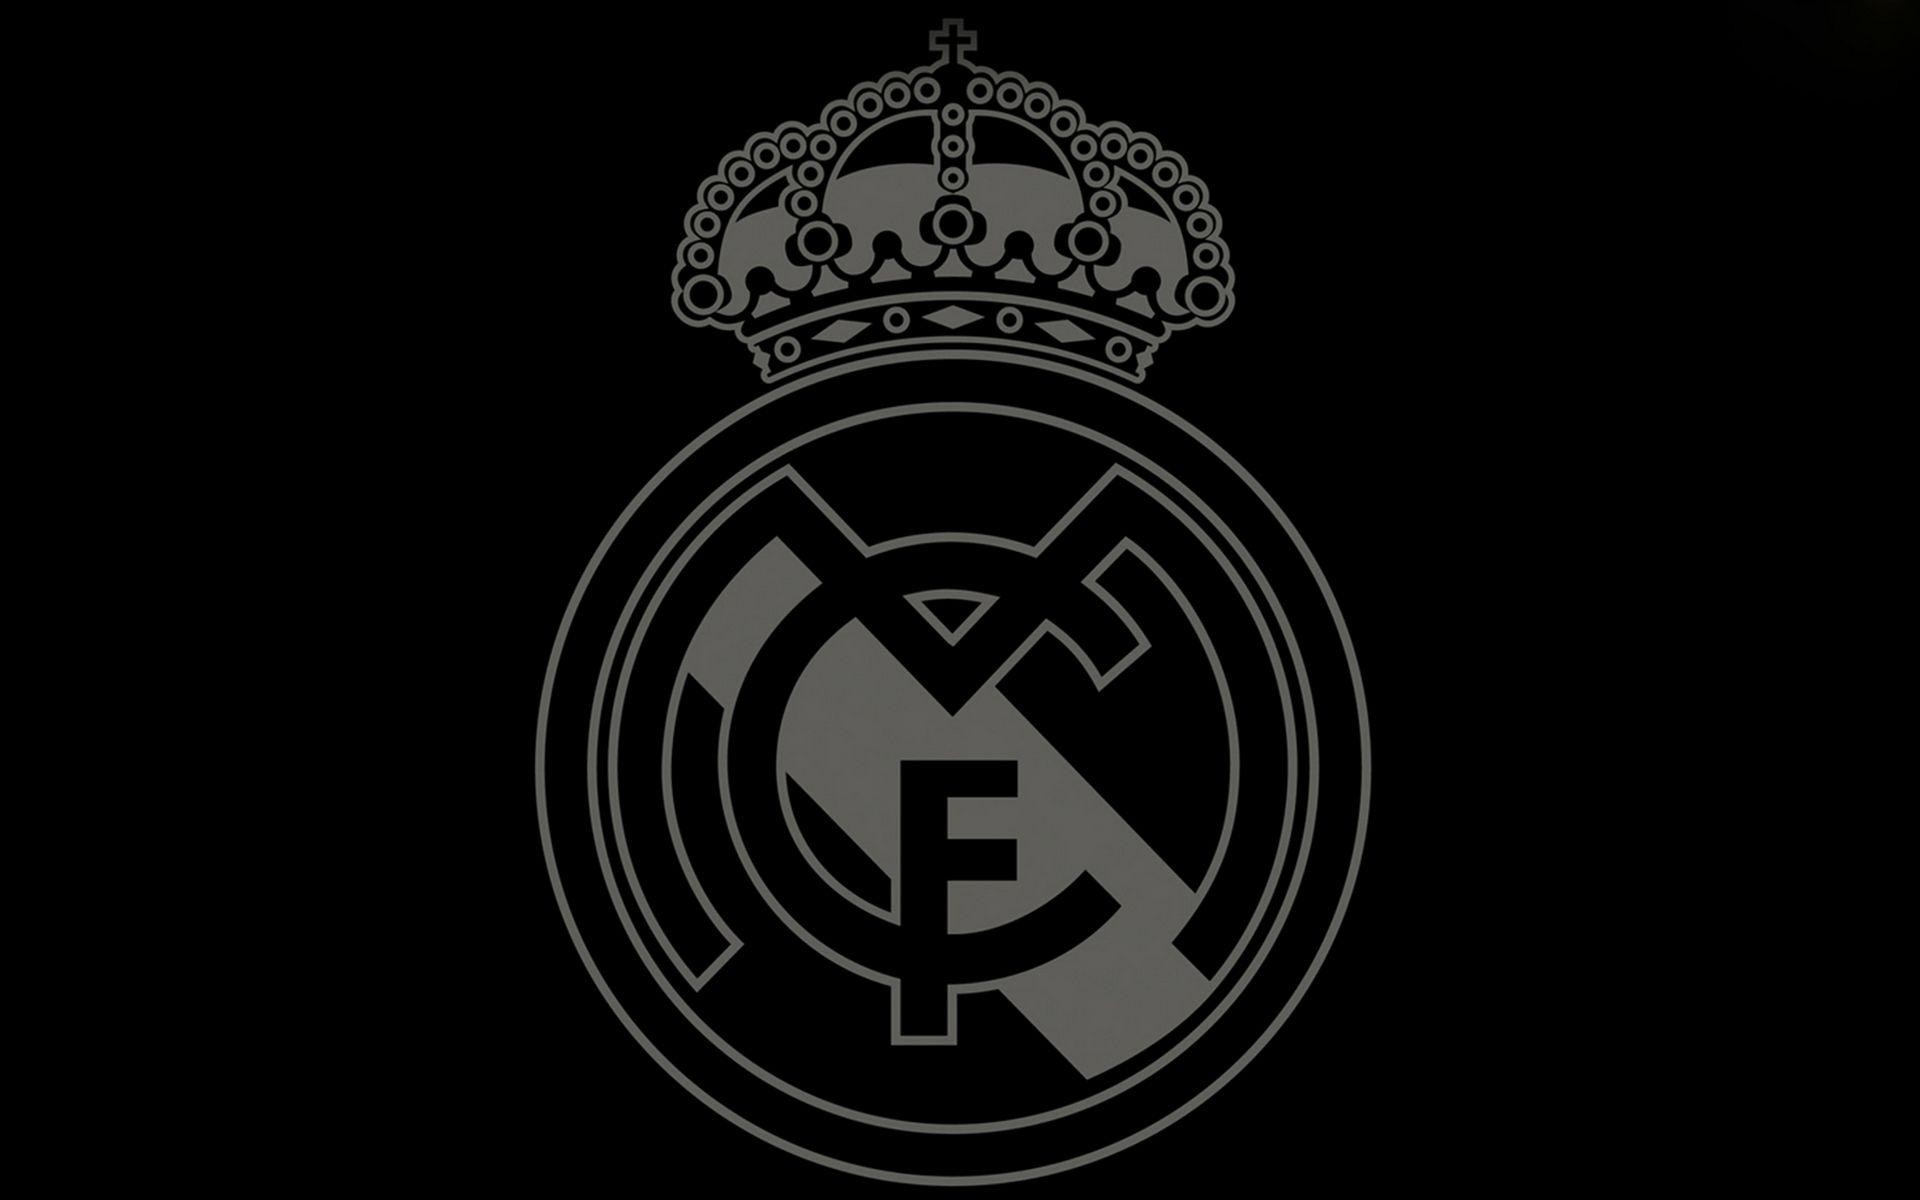 Real madrid wallpaper full hd 2018 72 images 1920x1200 real madrid 2015 wallpapers 3d wallpaper cave voltagebd Gallery